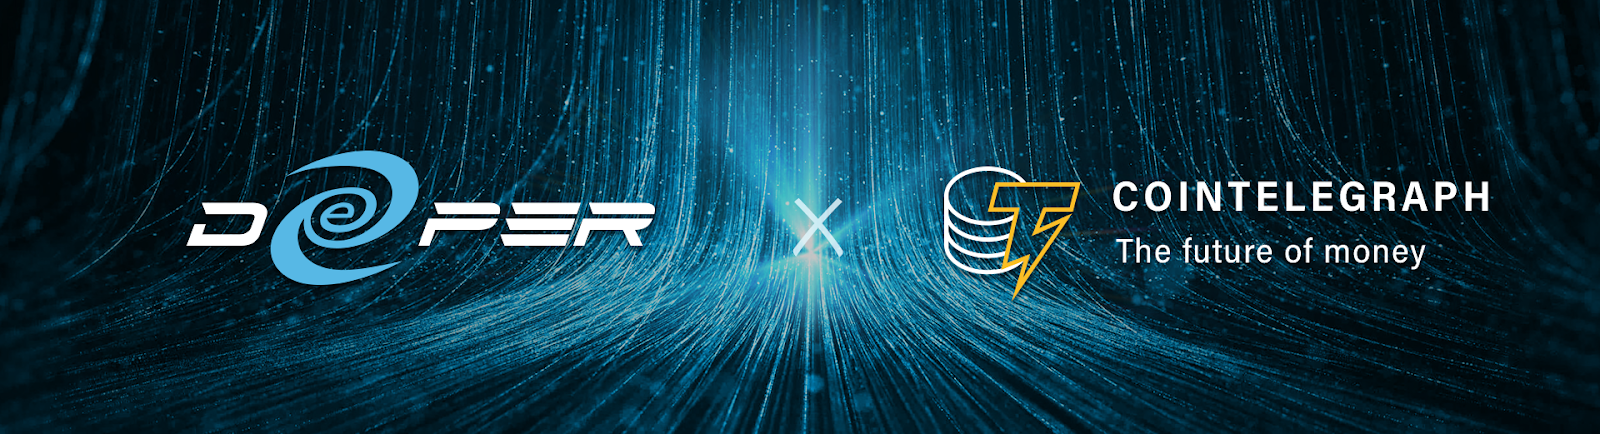 Deeper Network Partners With Cointelegraph To Deep Dive Into The Polkadot Ecosystem